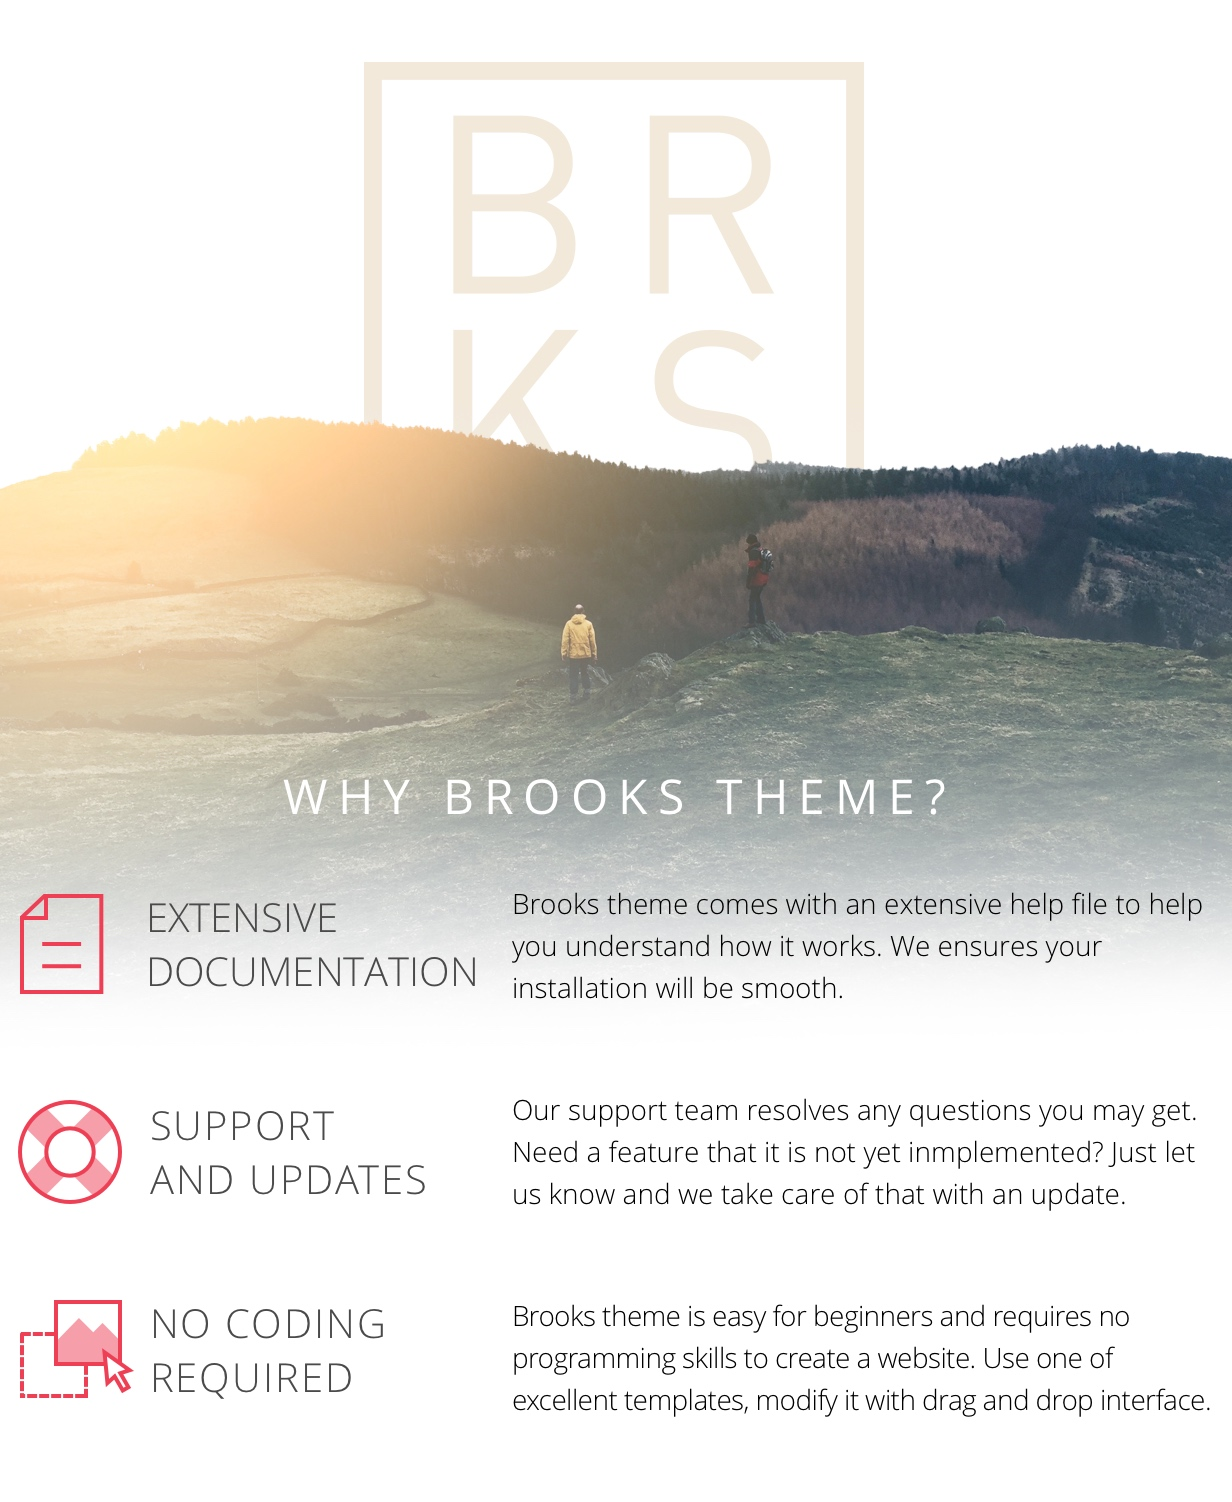 Why Brooks Theme? Extensive documentation, support and updates, no coding required